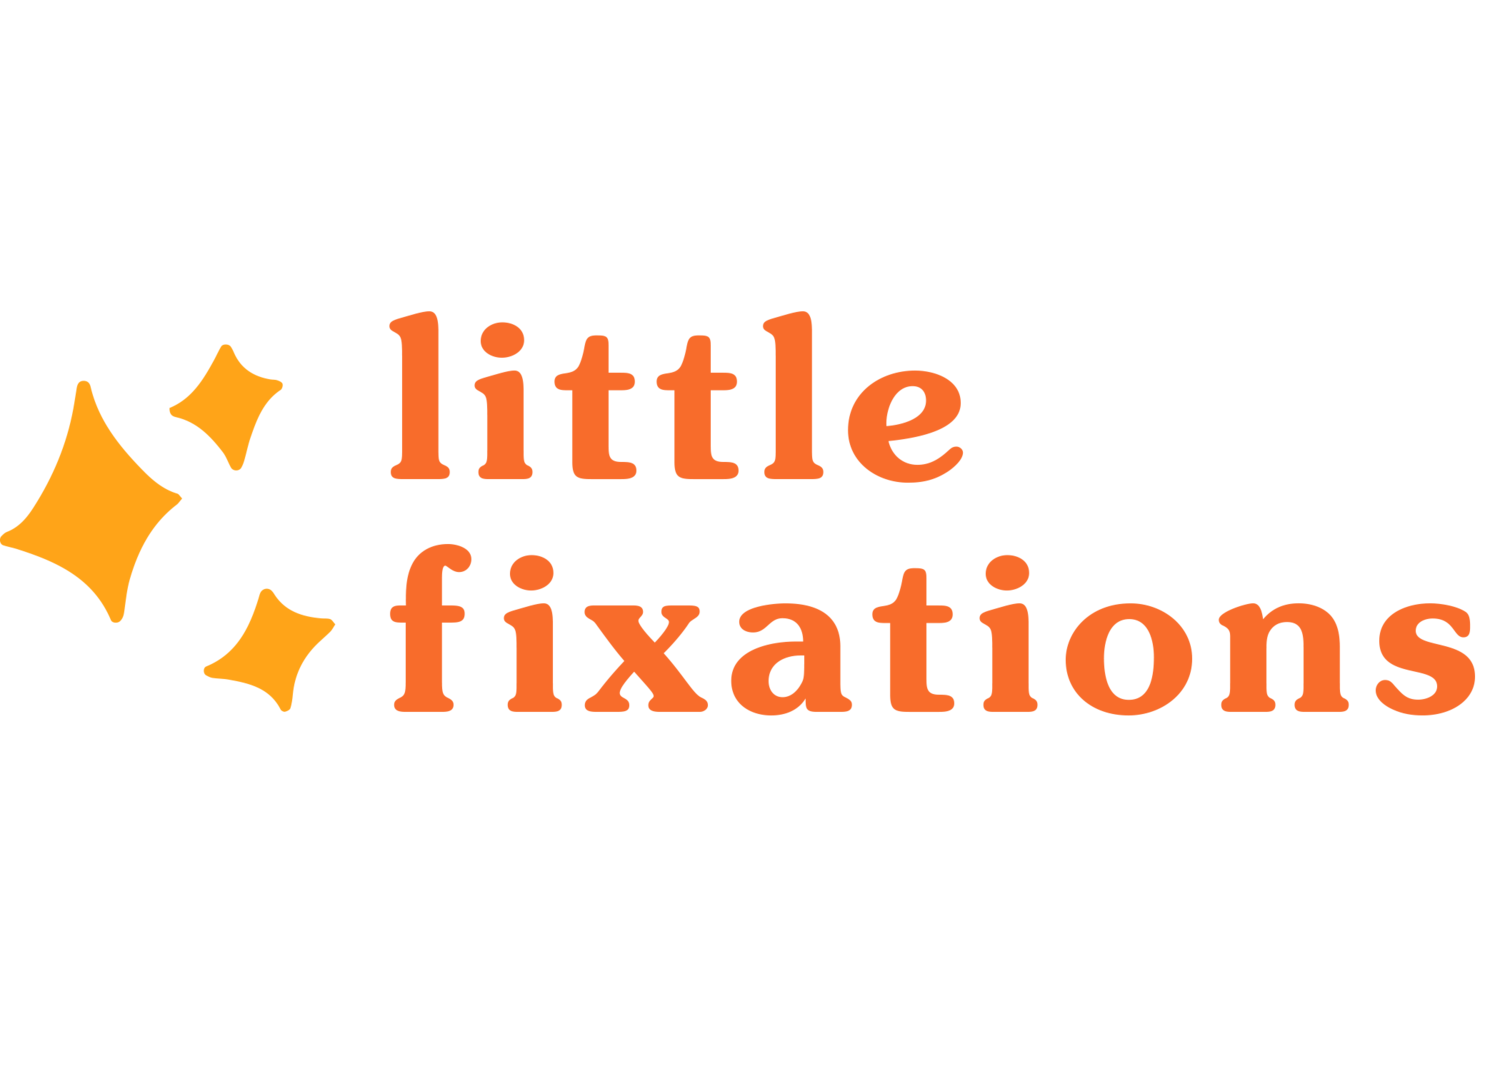 Little Fixations